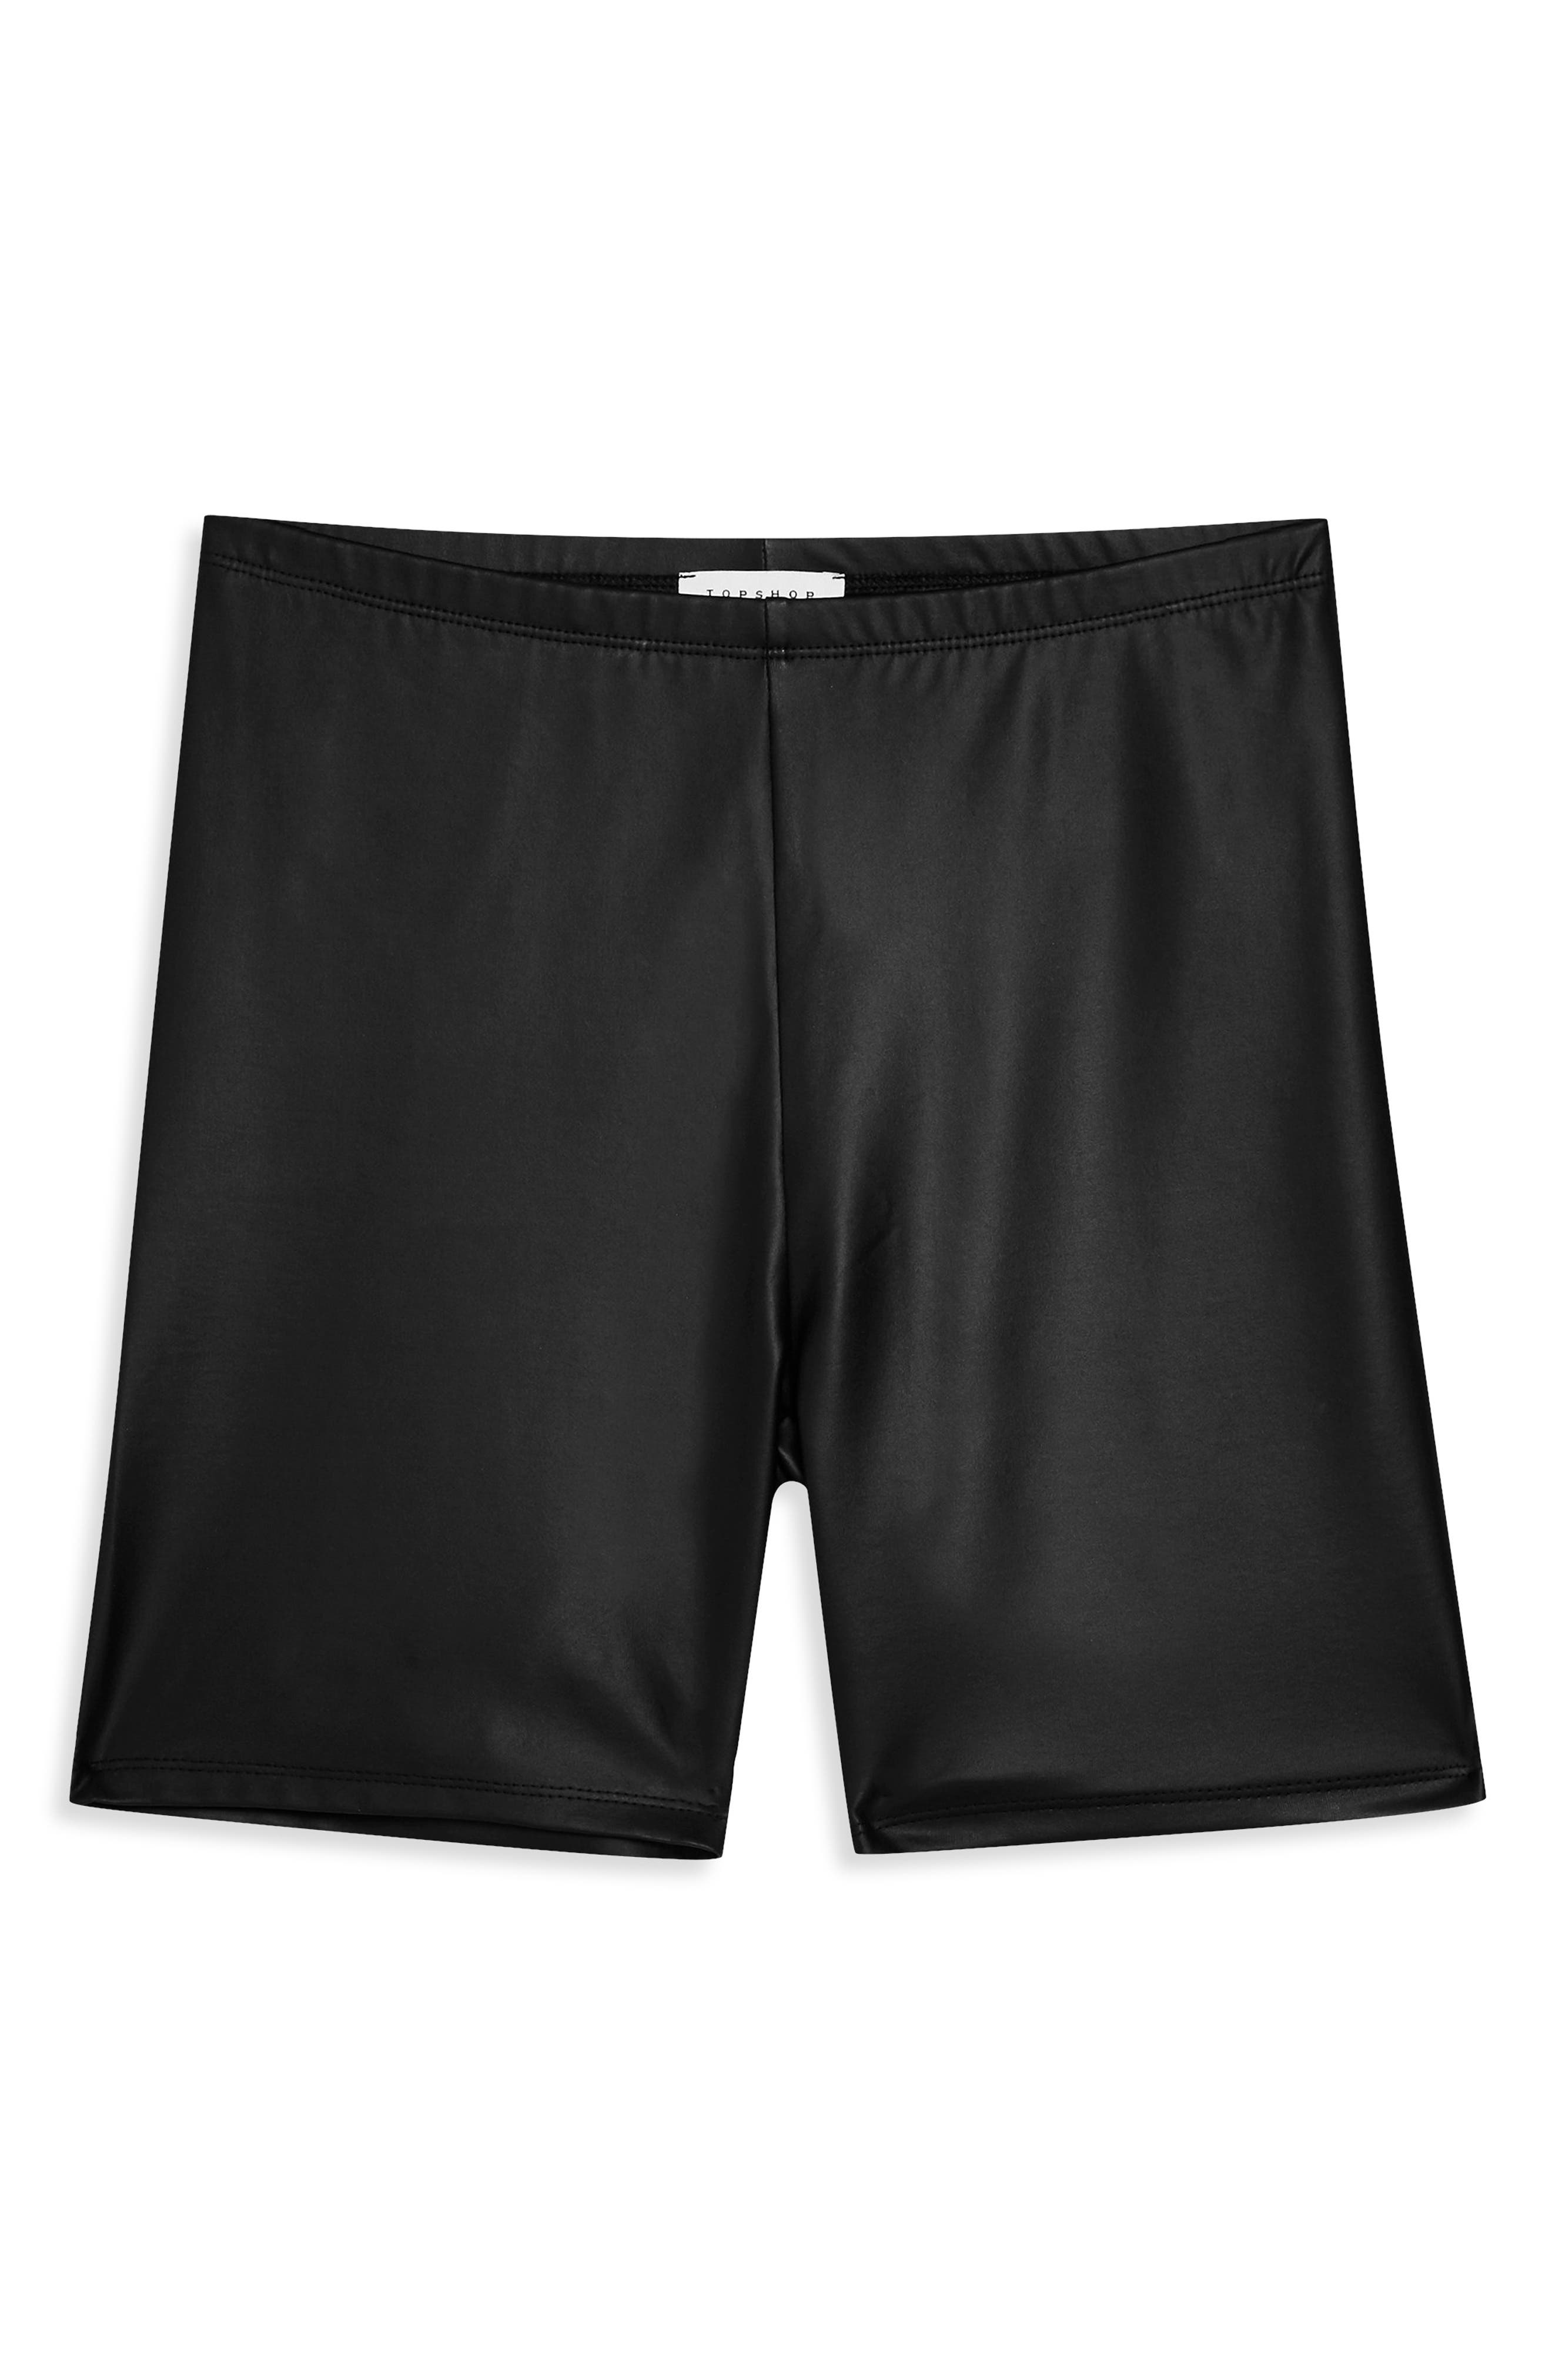 Faux Leather Cycling Shorts,                             Alternate thumbnail 3, color,                             BLACK